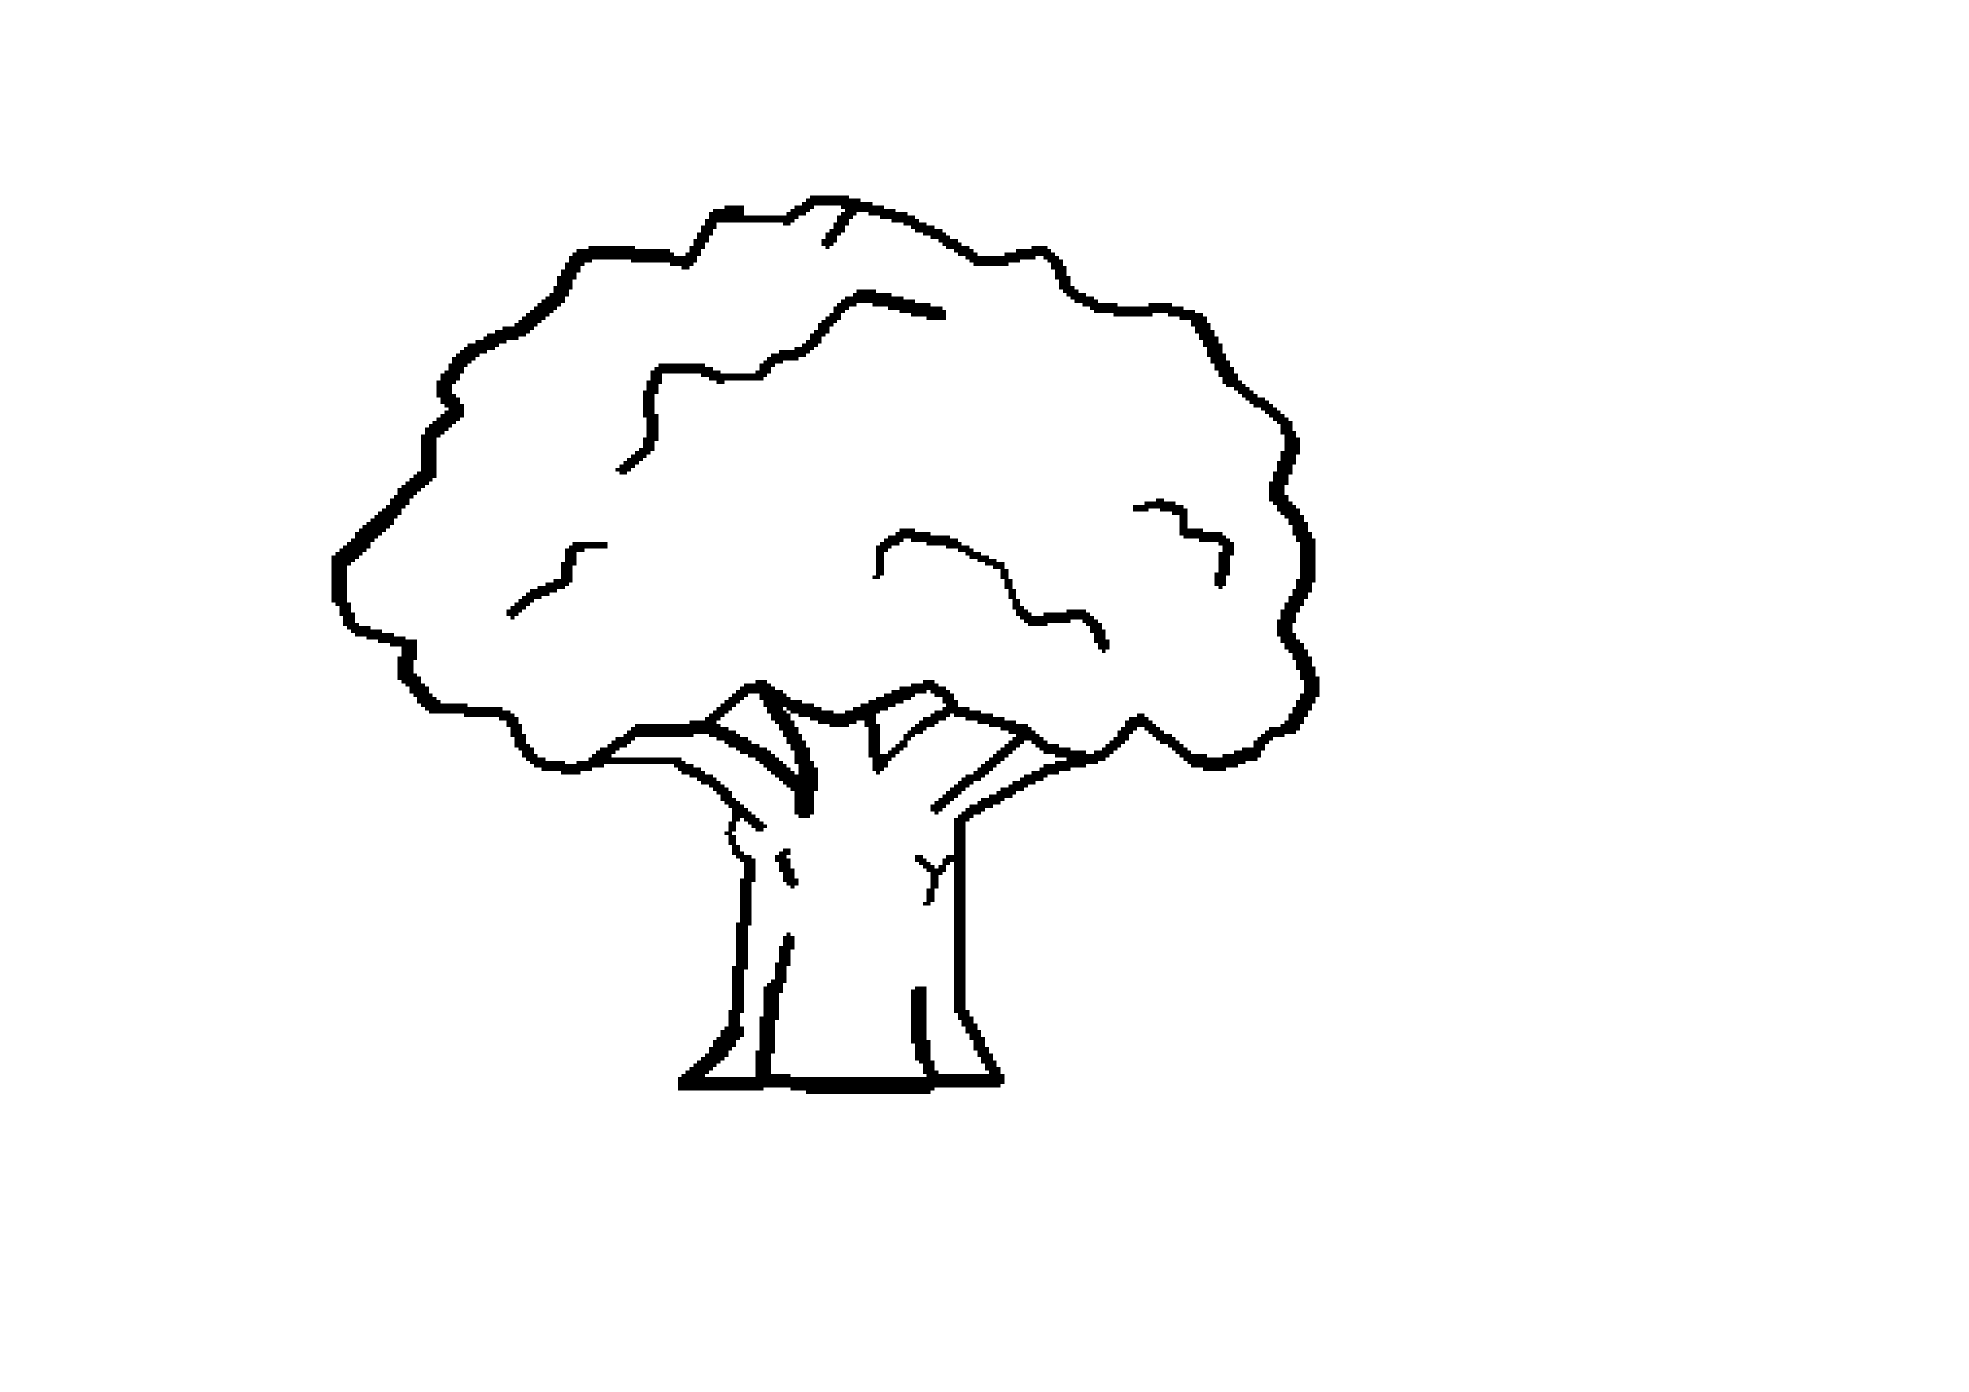 Free Black And White Tree Drawing Download Free Clip Art Free Clip